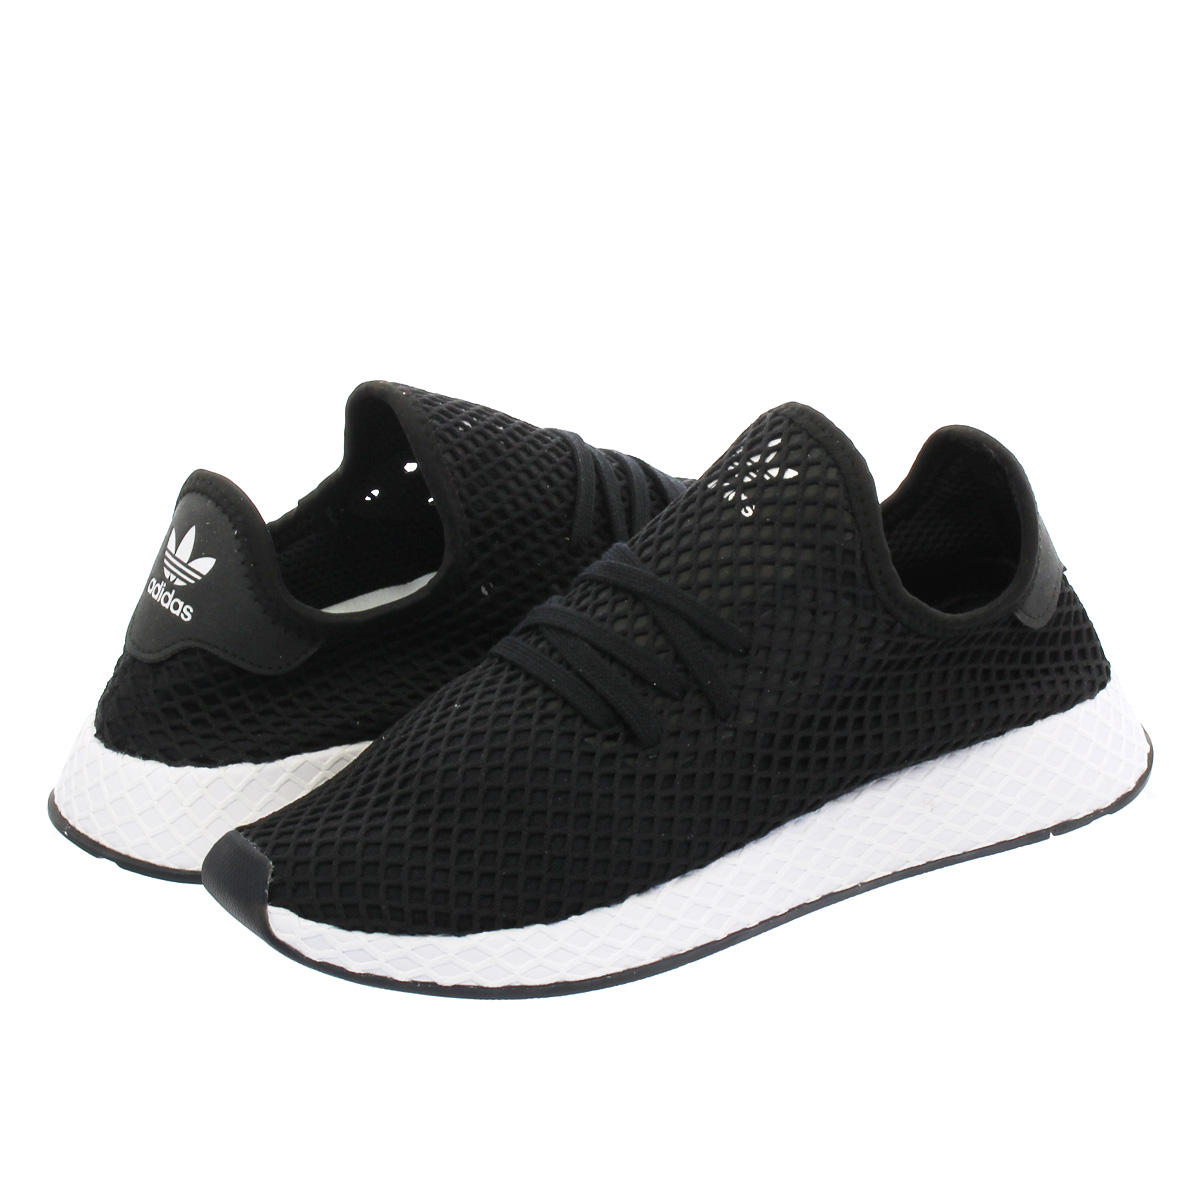 adidas DEERUPT RUNNER KICKS LAB. アディダス ディーラプト ランナー キックスラボ 【KICKS LAB. EXCLUSIVE】 CORE BLACK/CORE BLACK/RUNNING WHITE